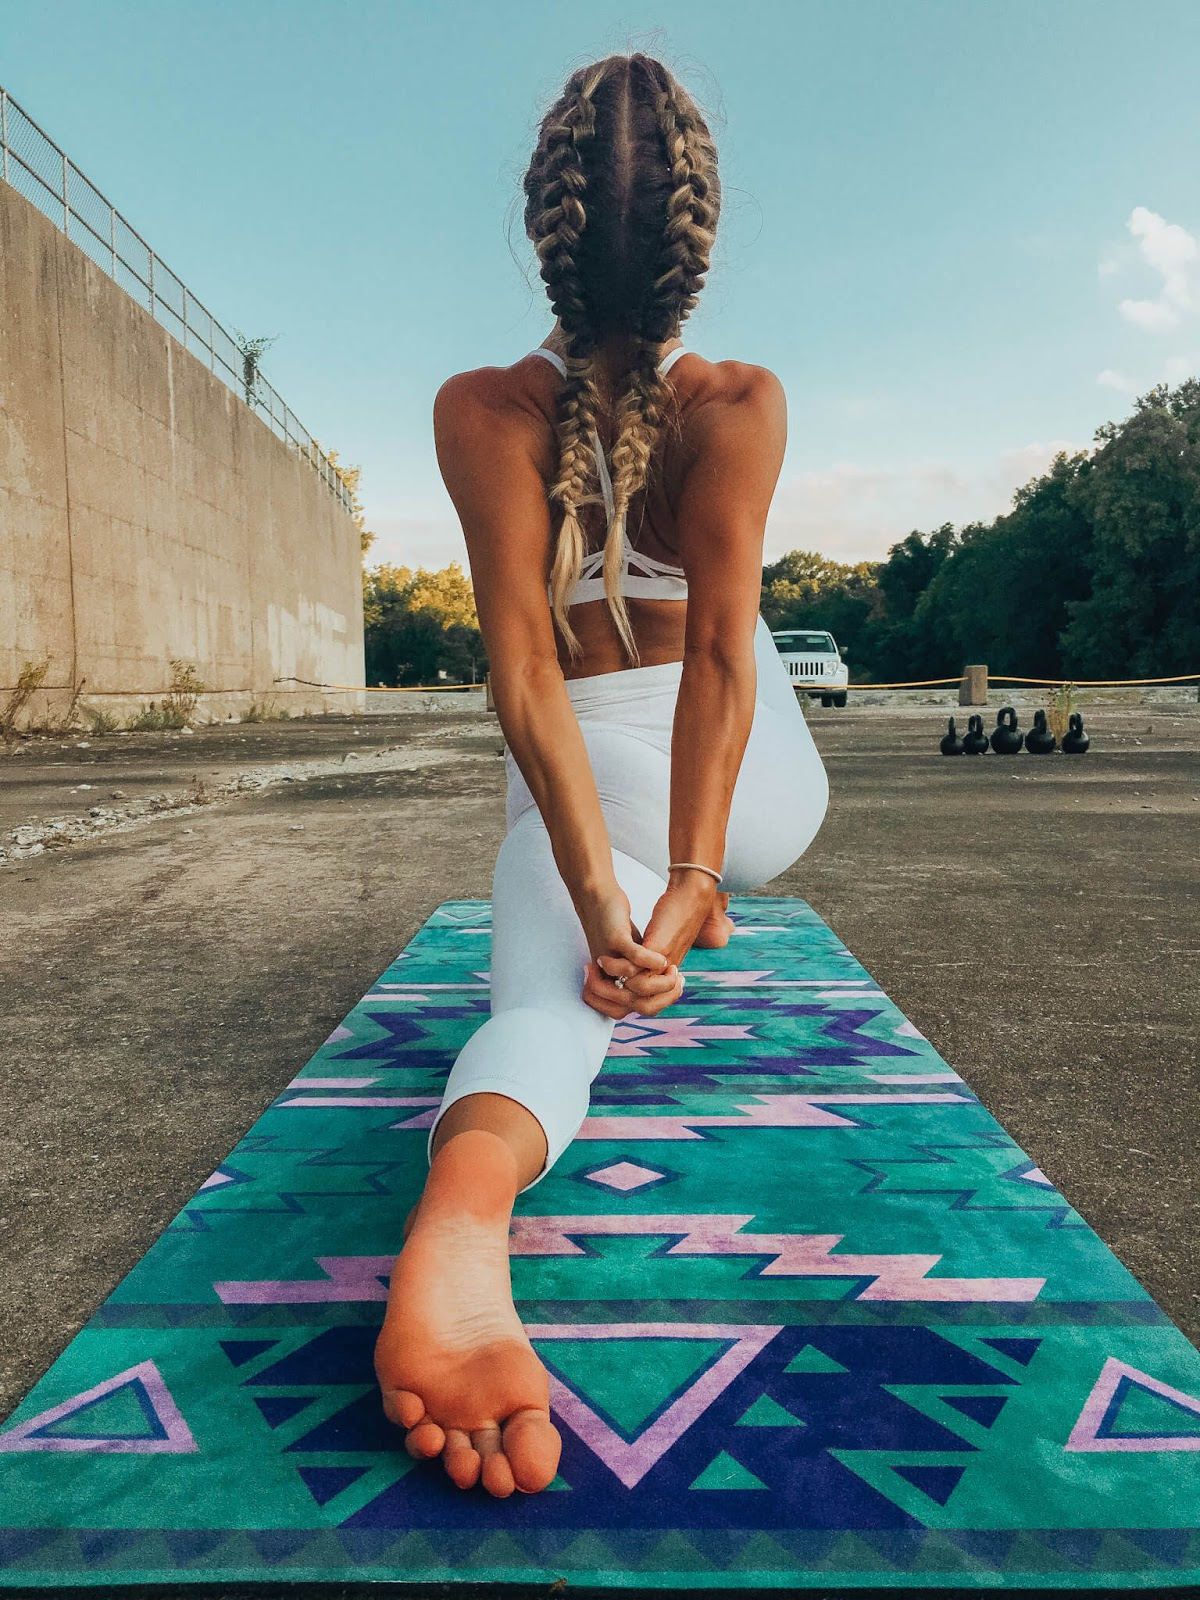 Woman stretching on yoga mat from behind.